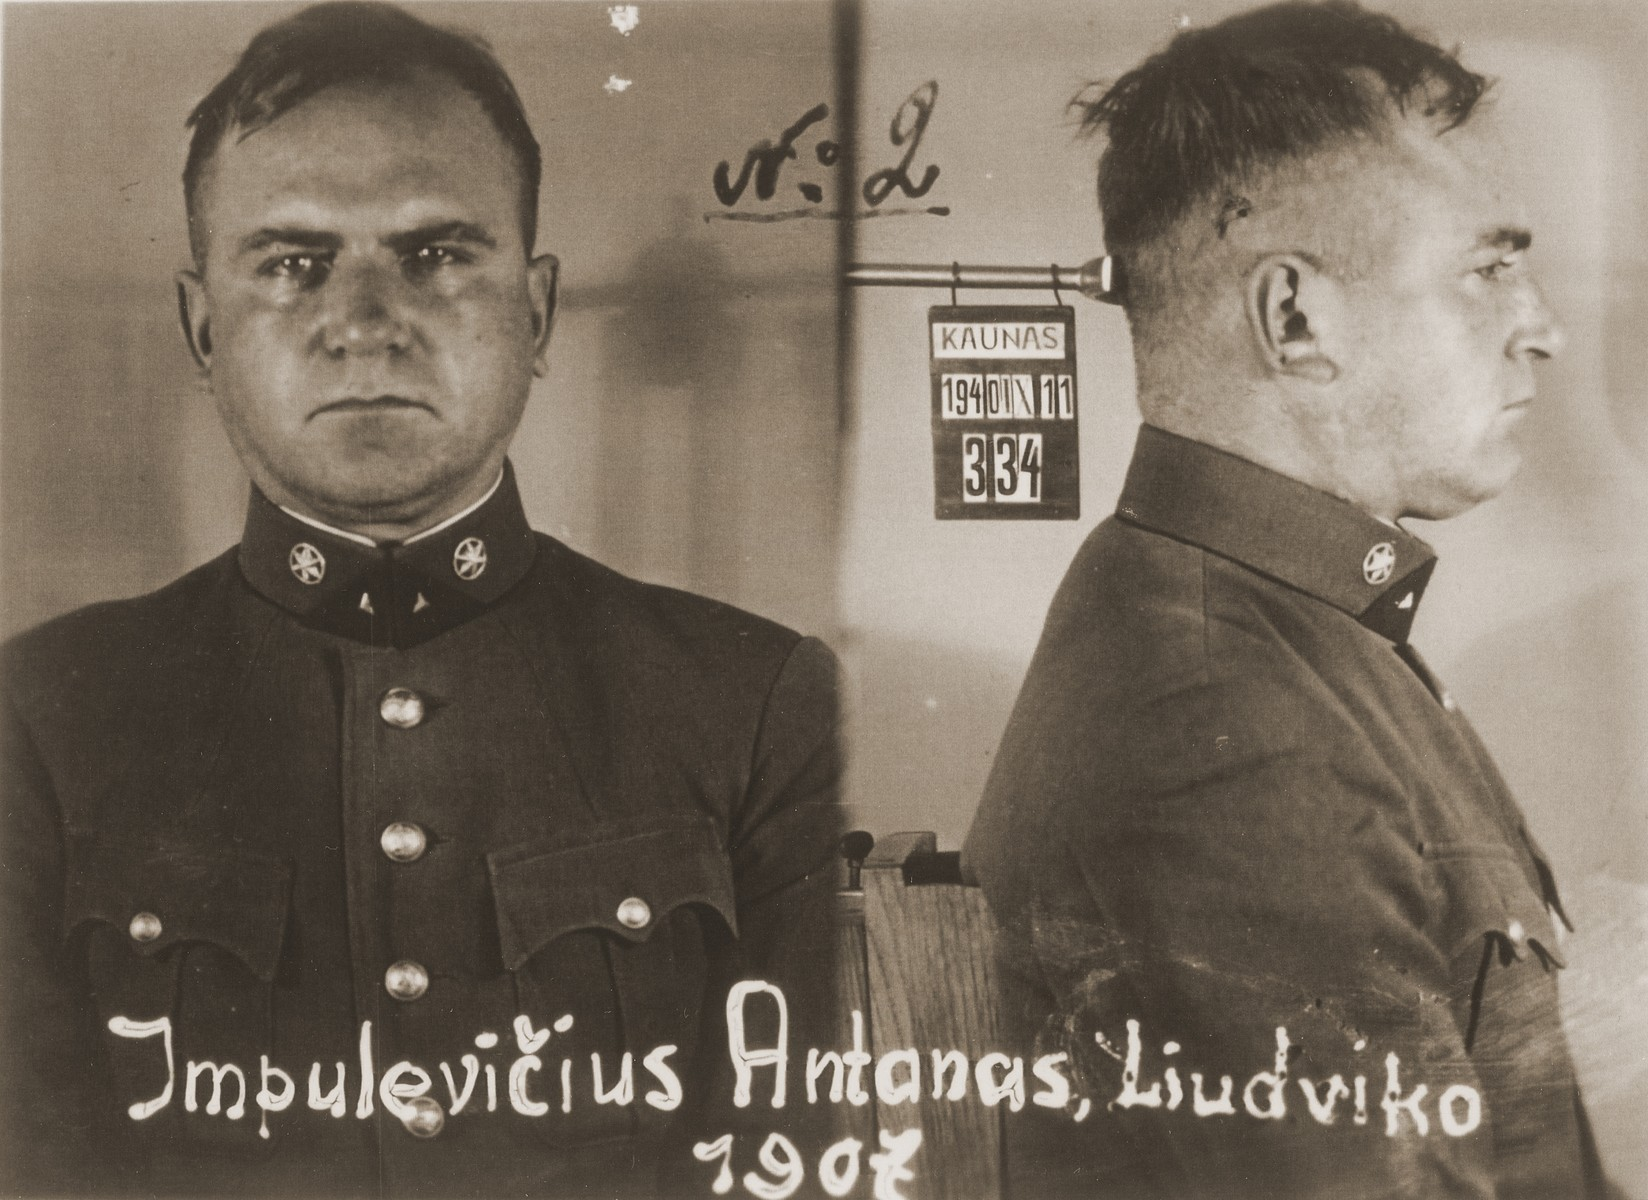 Mug shot of Antanas Impulevicius, taken after his arrest by the NKVD in Kovno for his involvement with the Lithuanian militia.